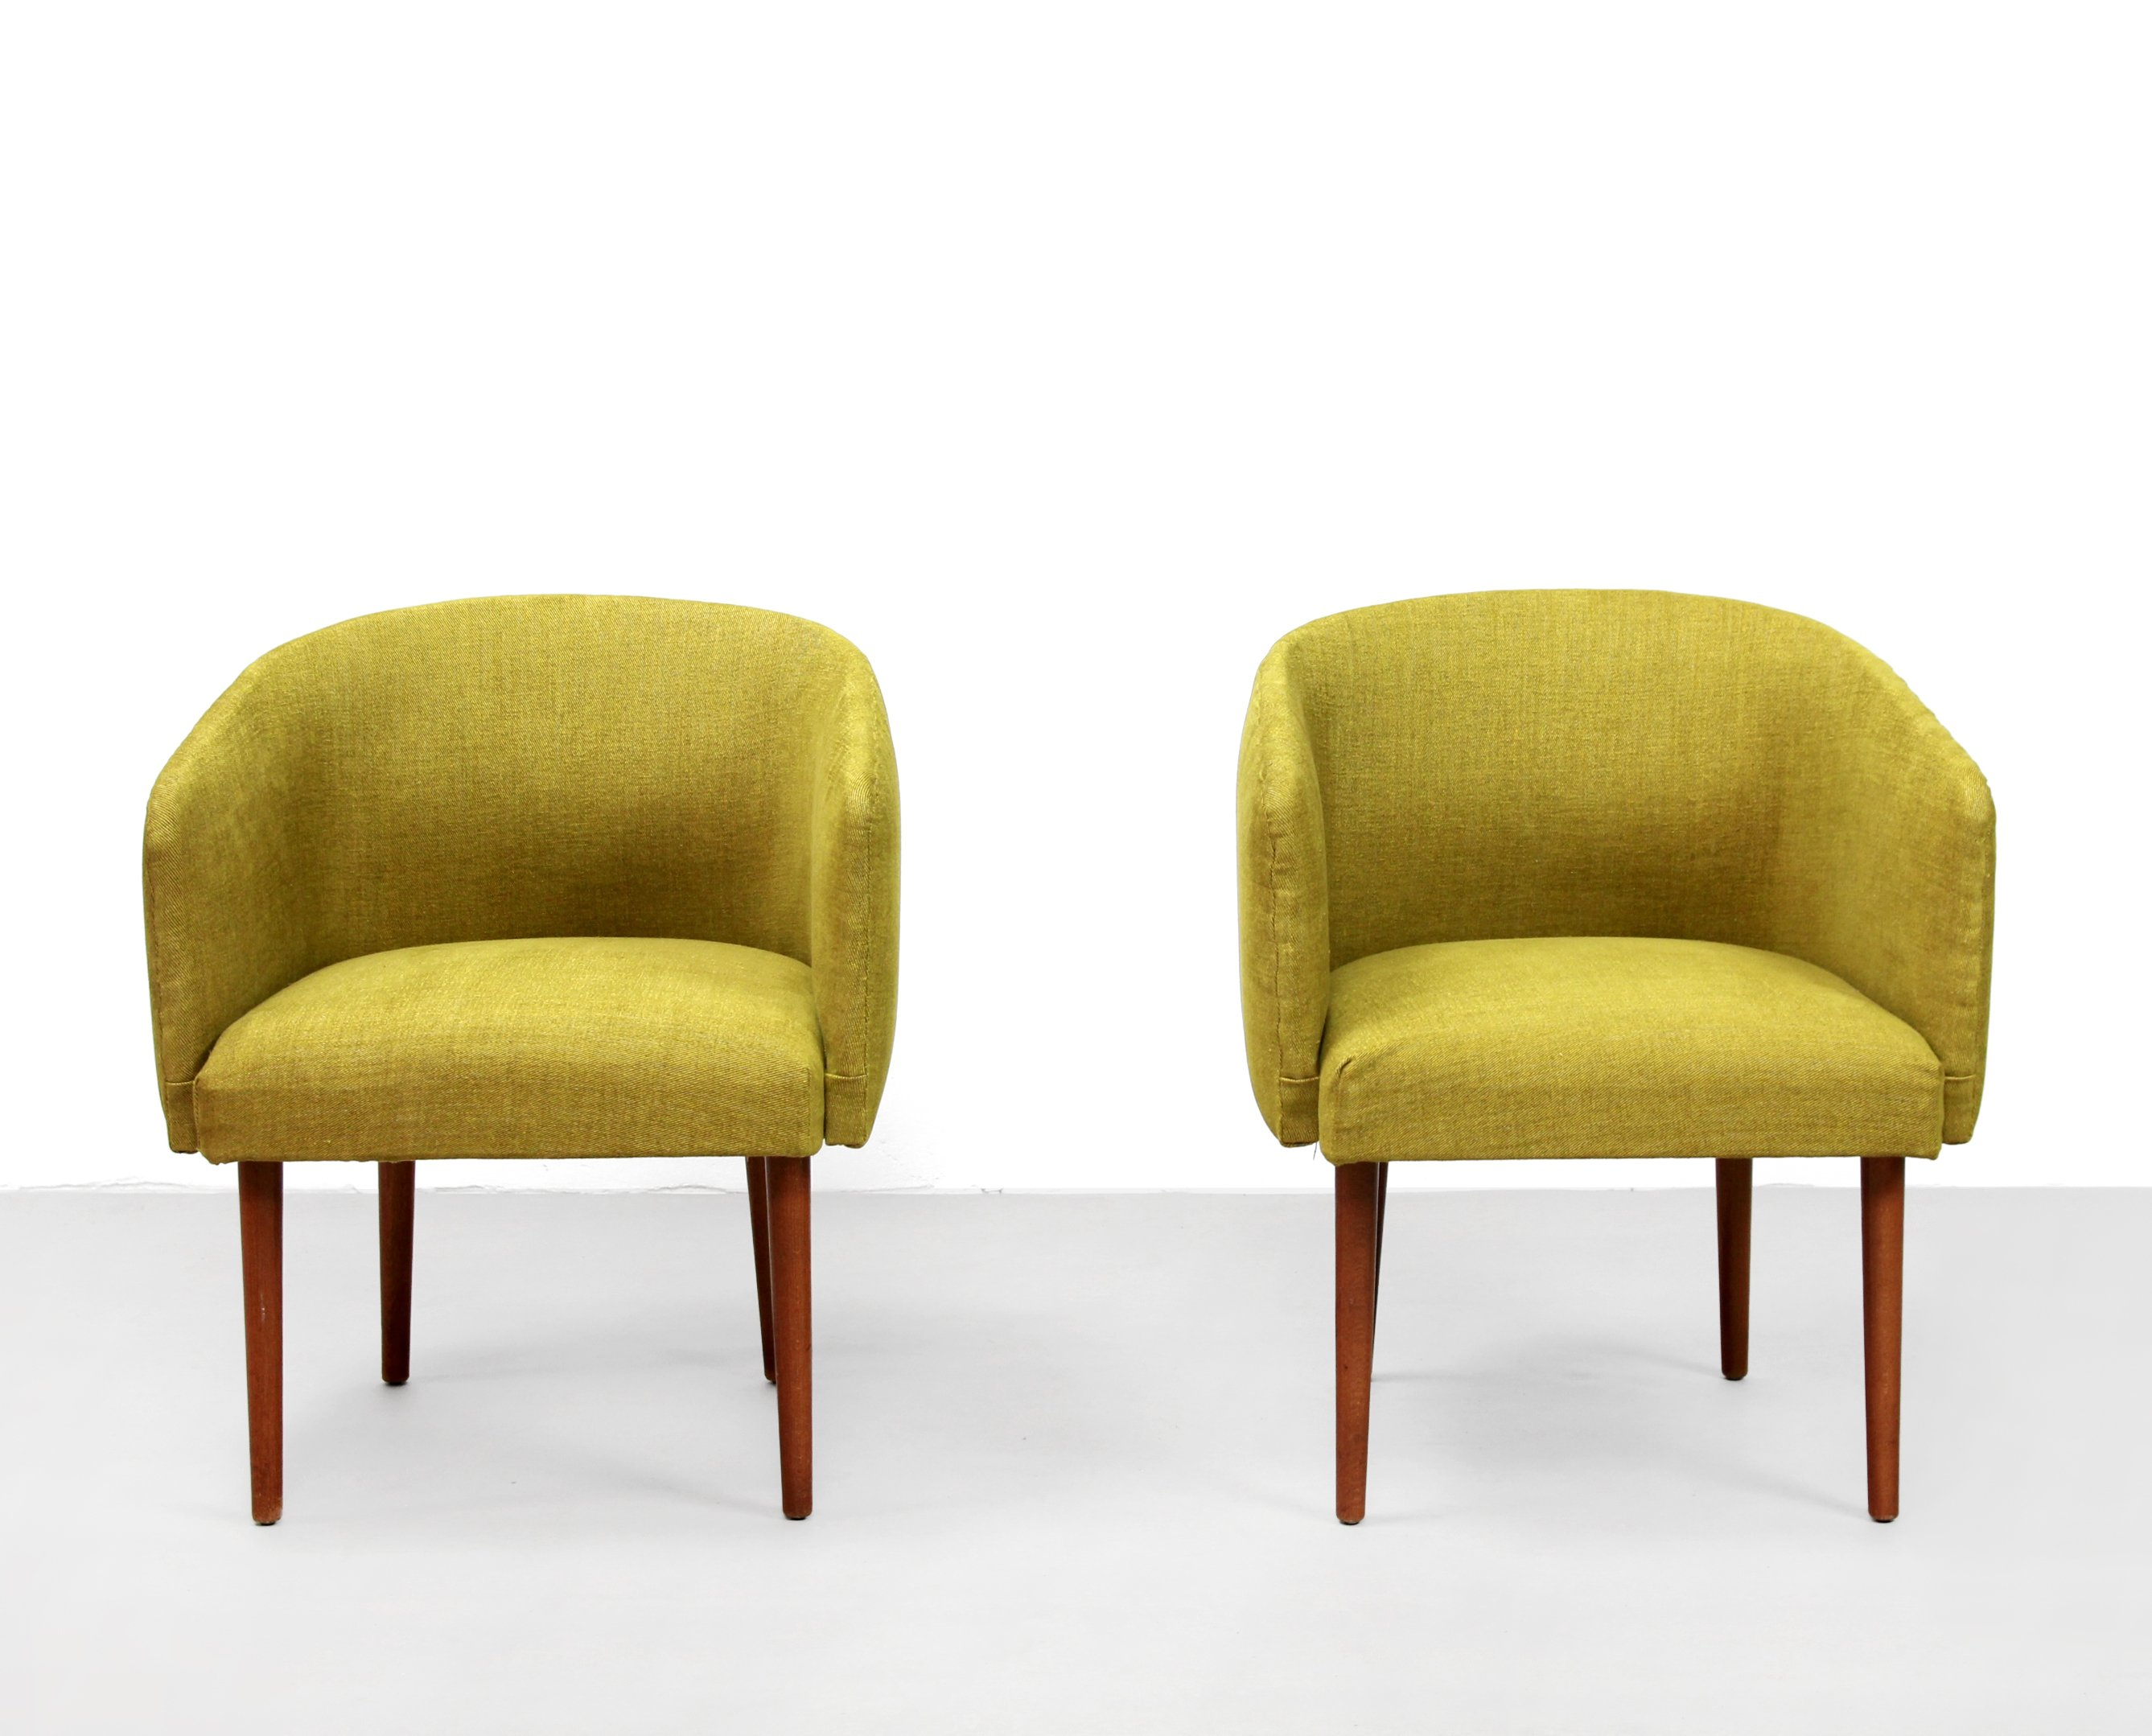 Fabulous Set Of Two Yellow Mid Century Modern Club Chairs 99861 Evergreenethics Interior Chair Design Evergreenethicsorg